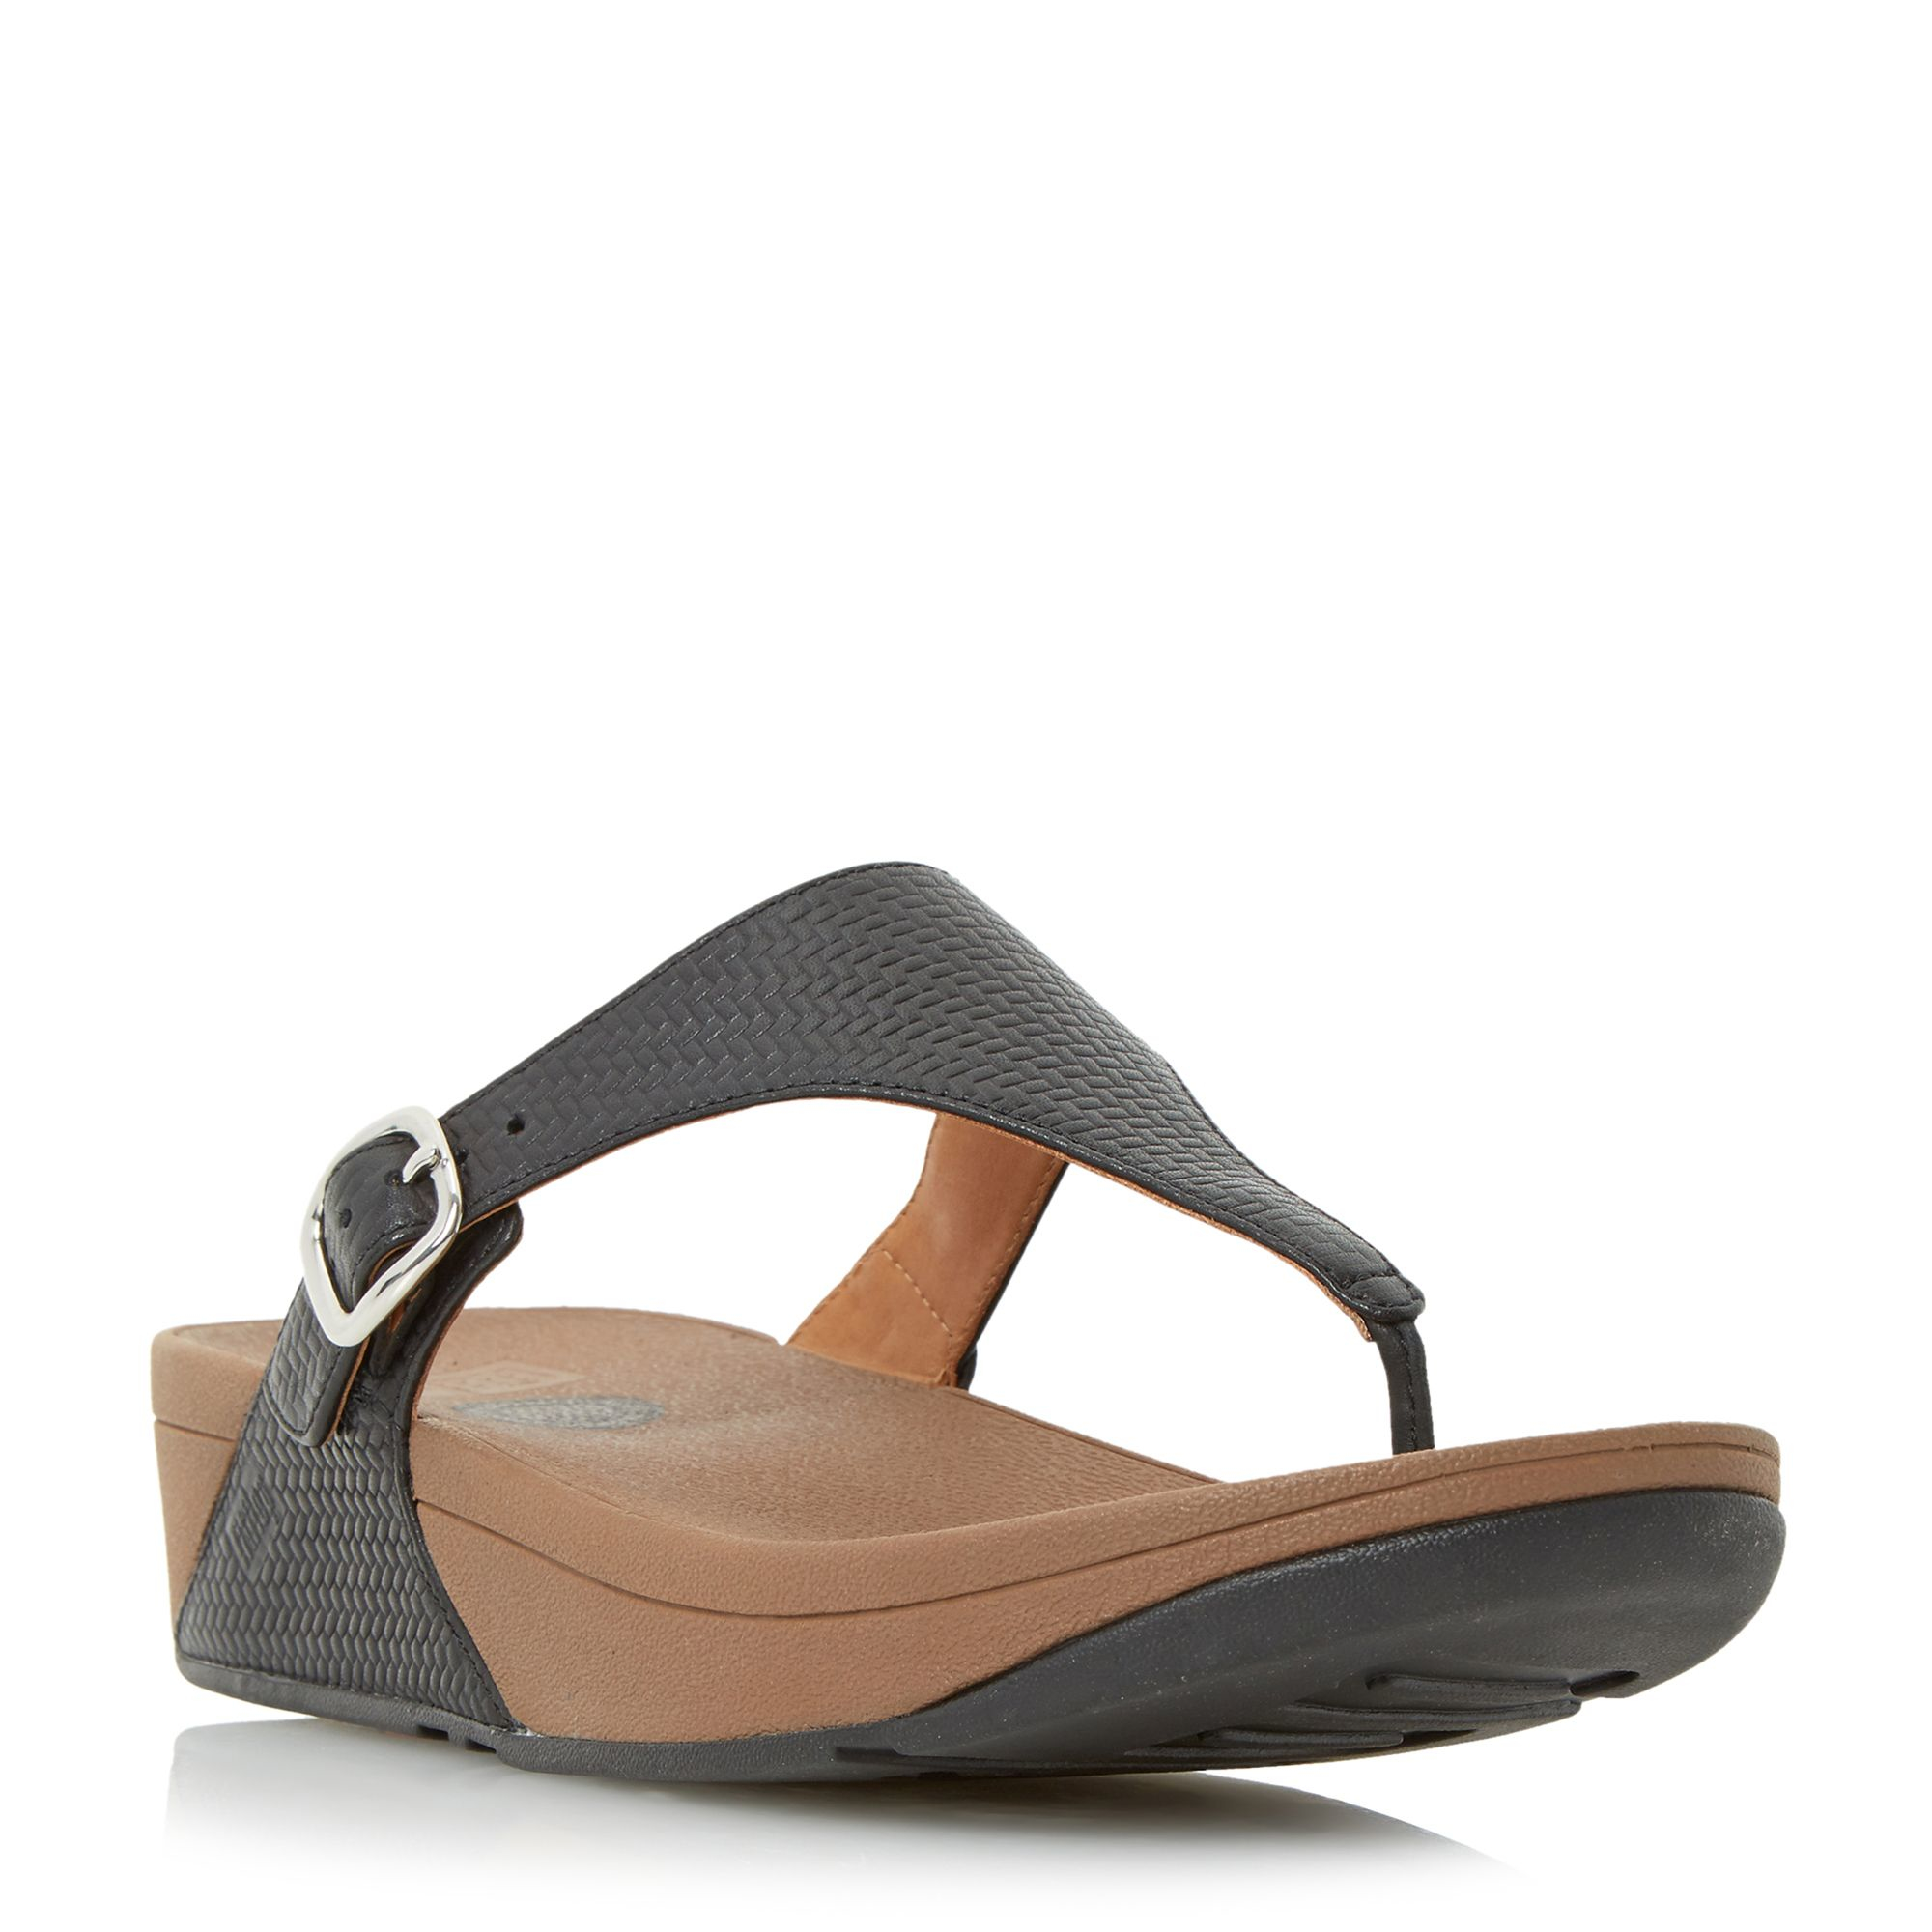 910ae5921a07 Fitflop The Skinny Buckle Detail Wedge Sandals in Gray